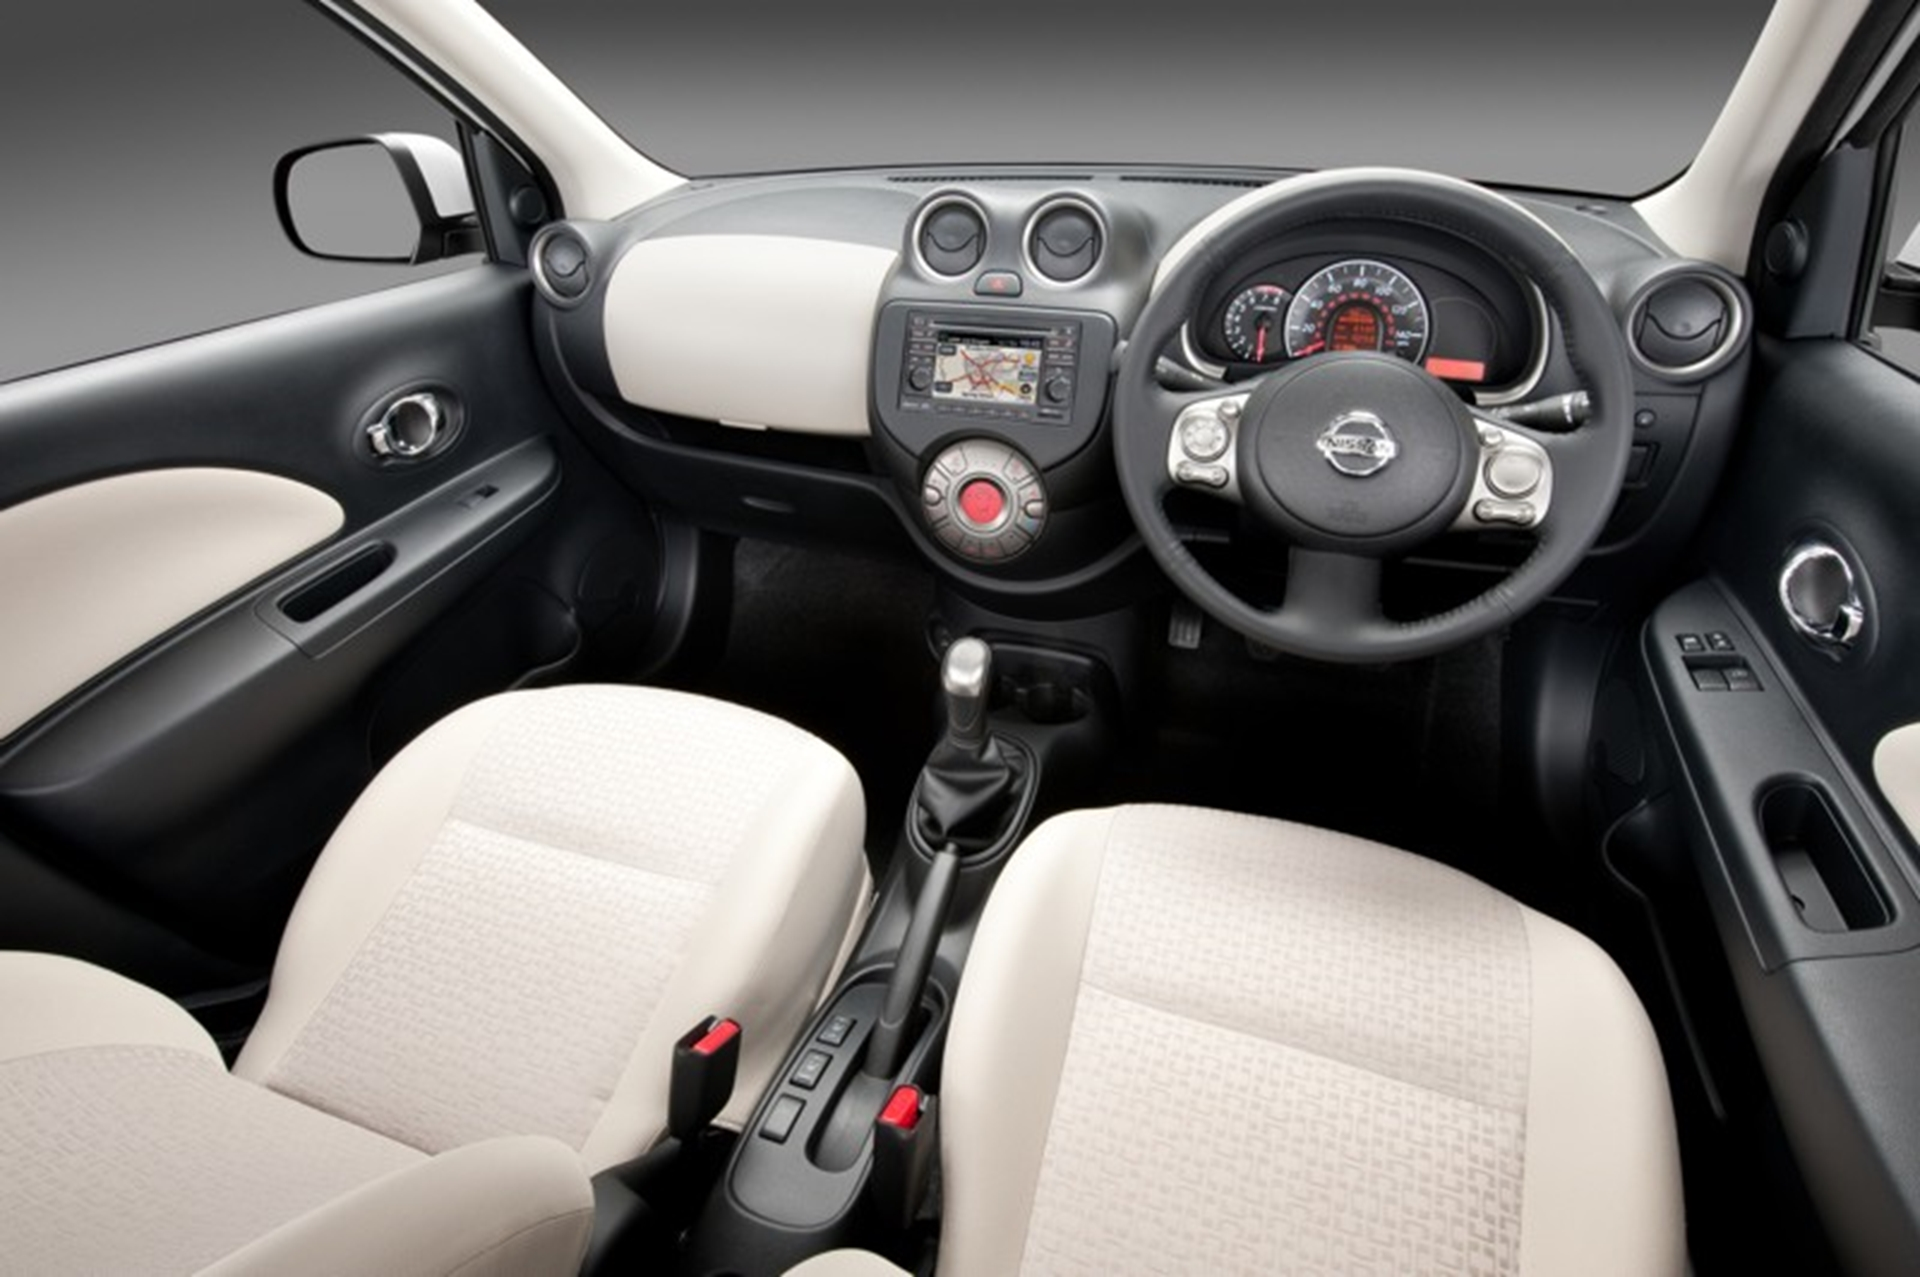 Kuro and Shiro grades added to the Nissan Micra line up